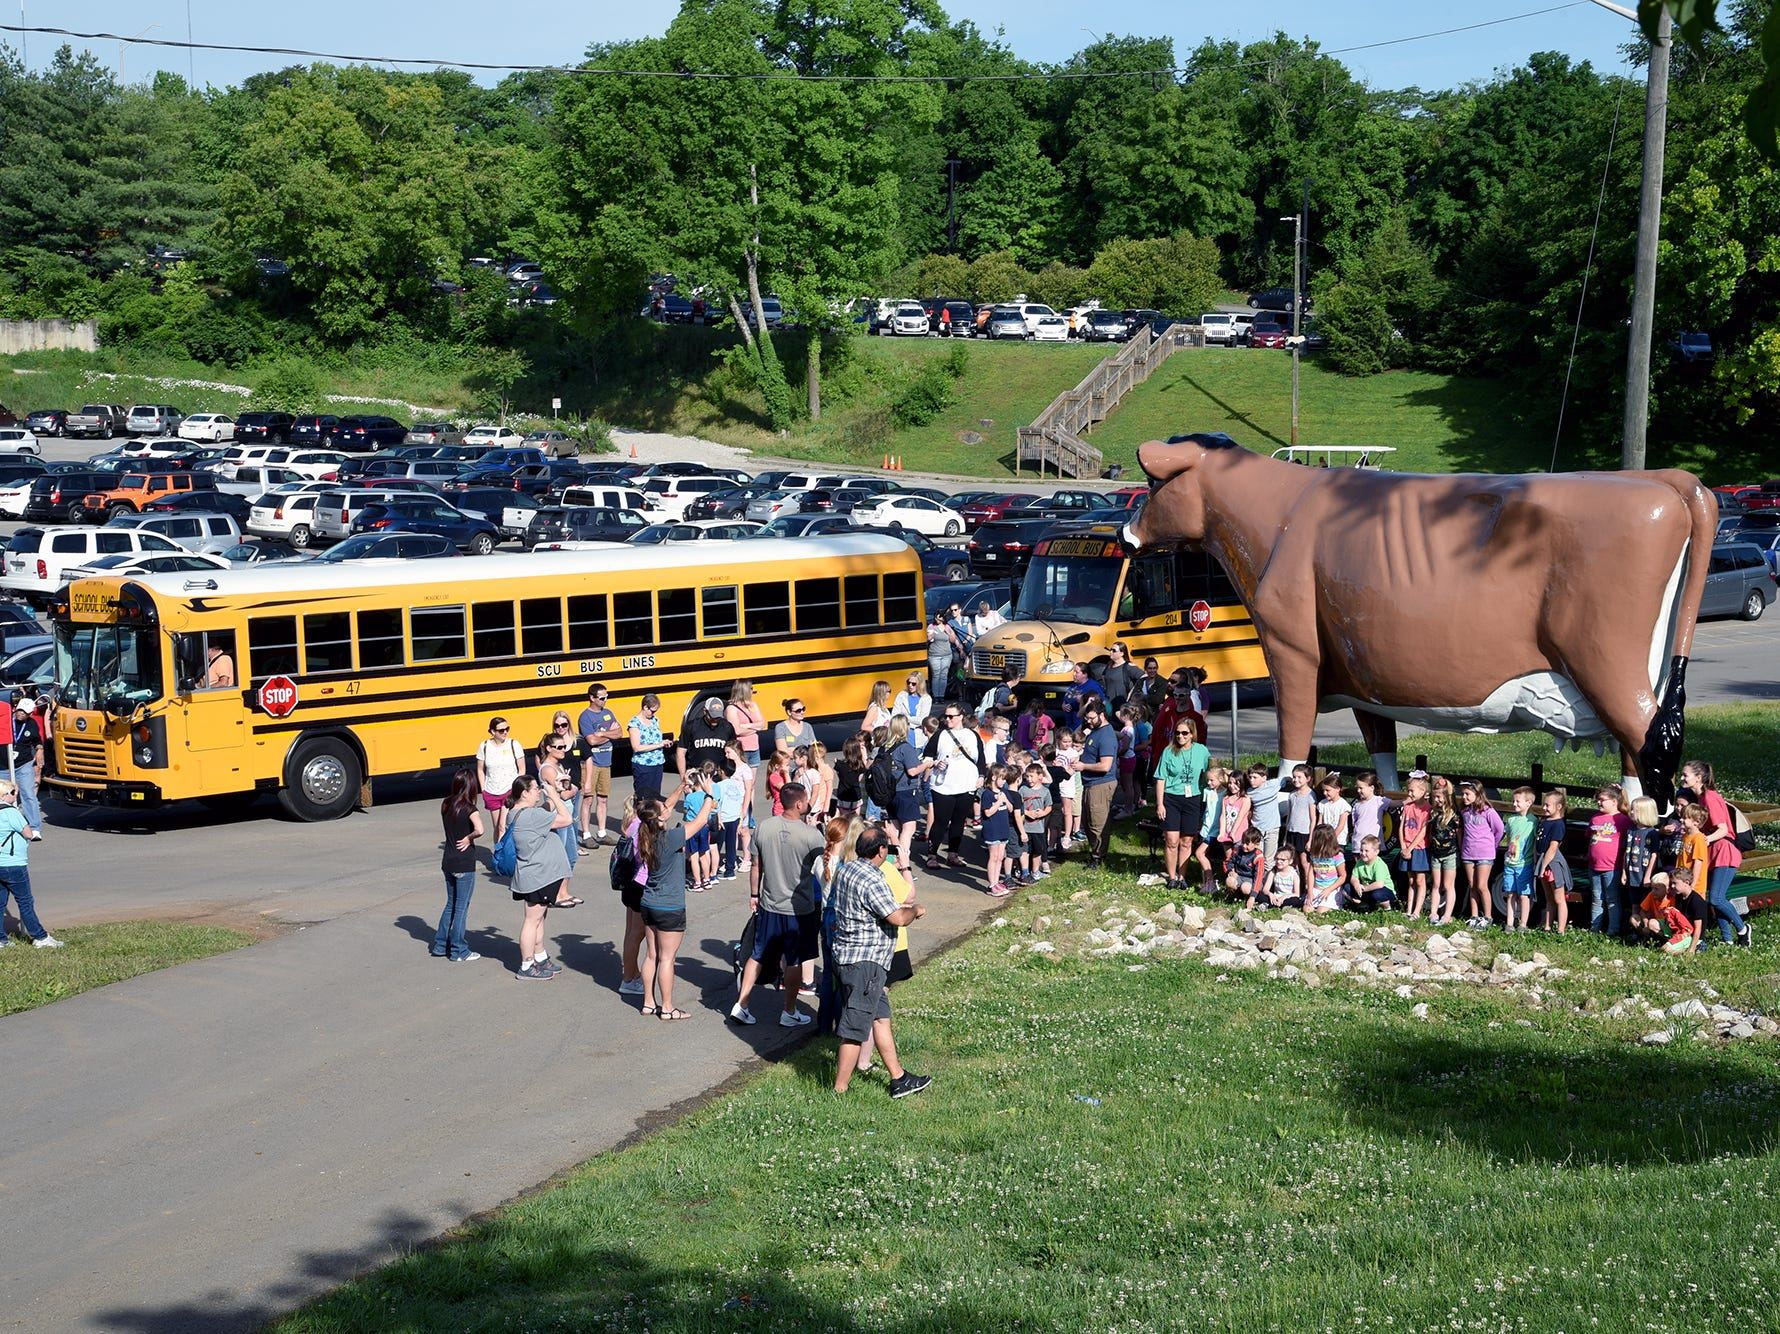 Knox County School children line up in front of the Mayfield Cow for a Picture.  Over 600 Knox County School children attended the annual Knox County Farm Bureau Ag in the Classroom Farm Day at Chilhowee Park Tuesday, May 7, 2019.